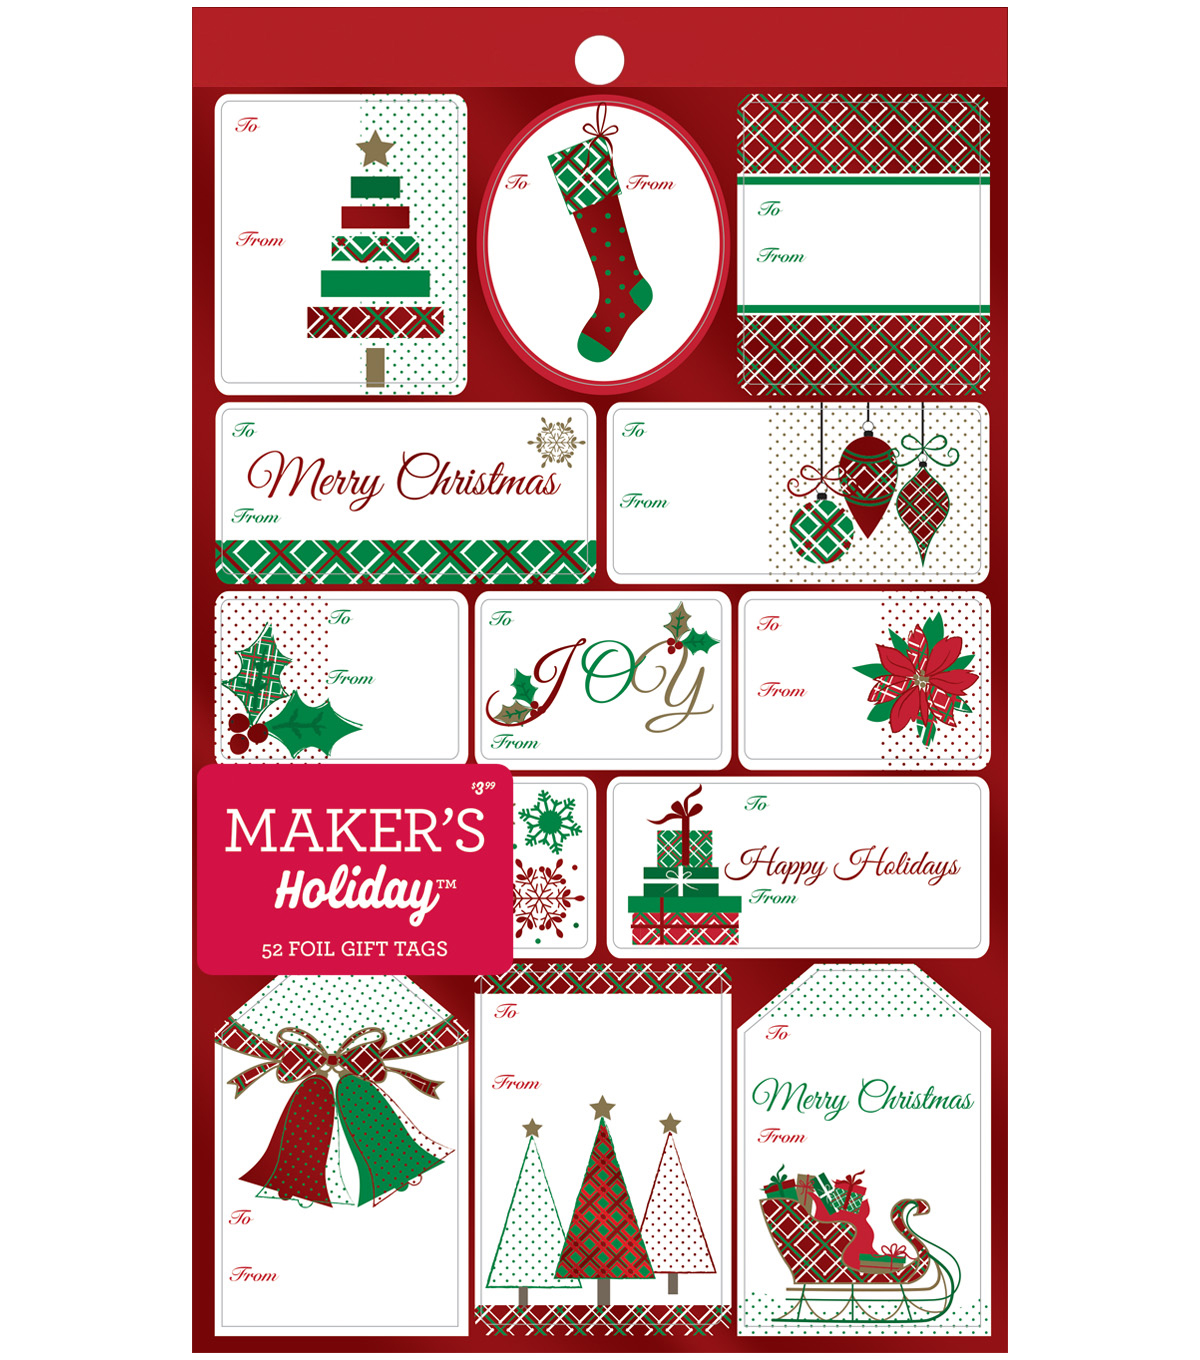 Maker\u0027s Holiday Christmas 52 pk Foil Gift Tags-Red, White & Green